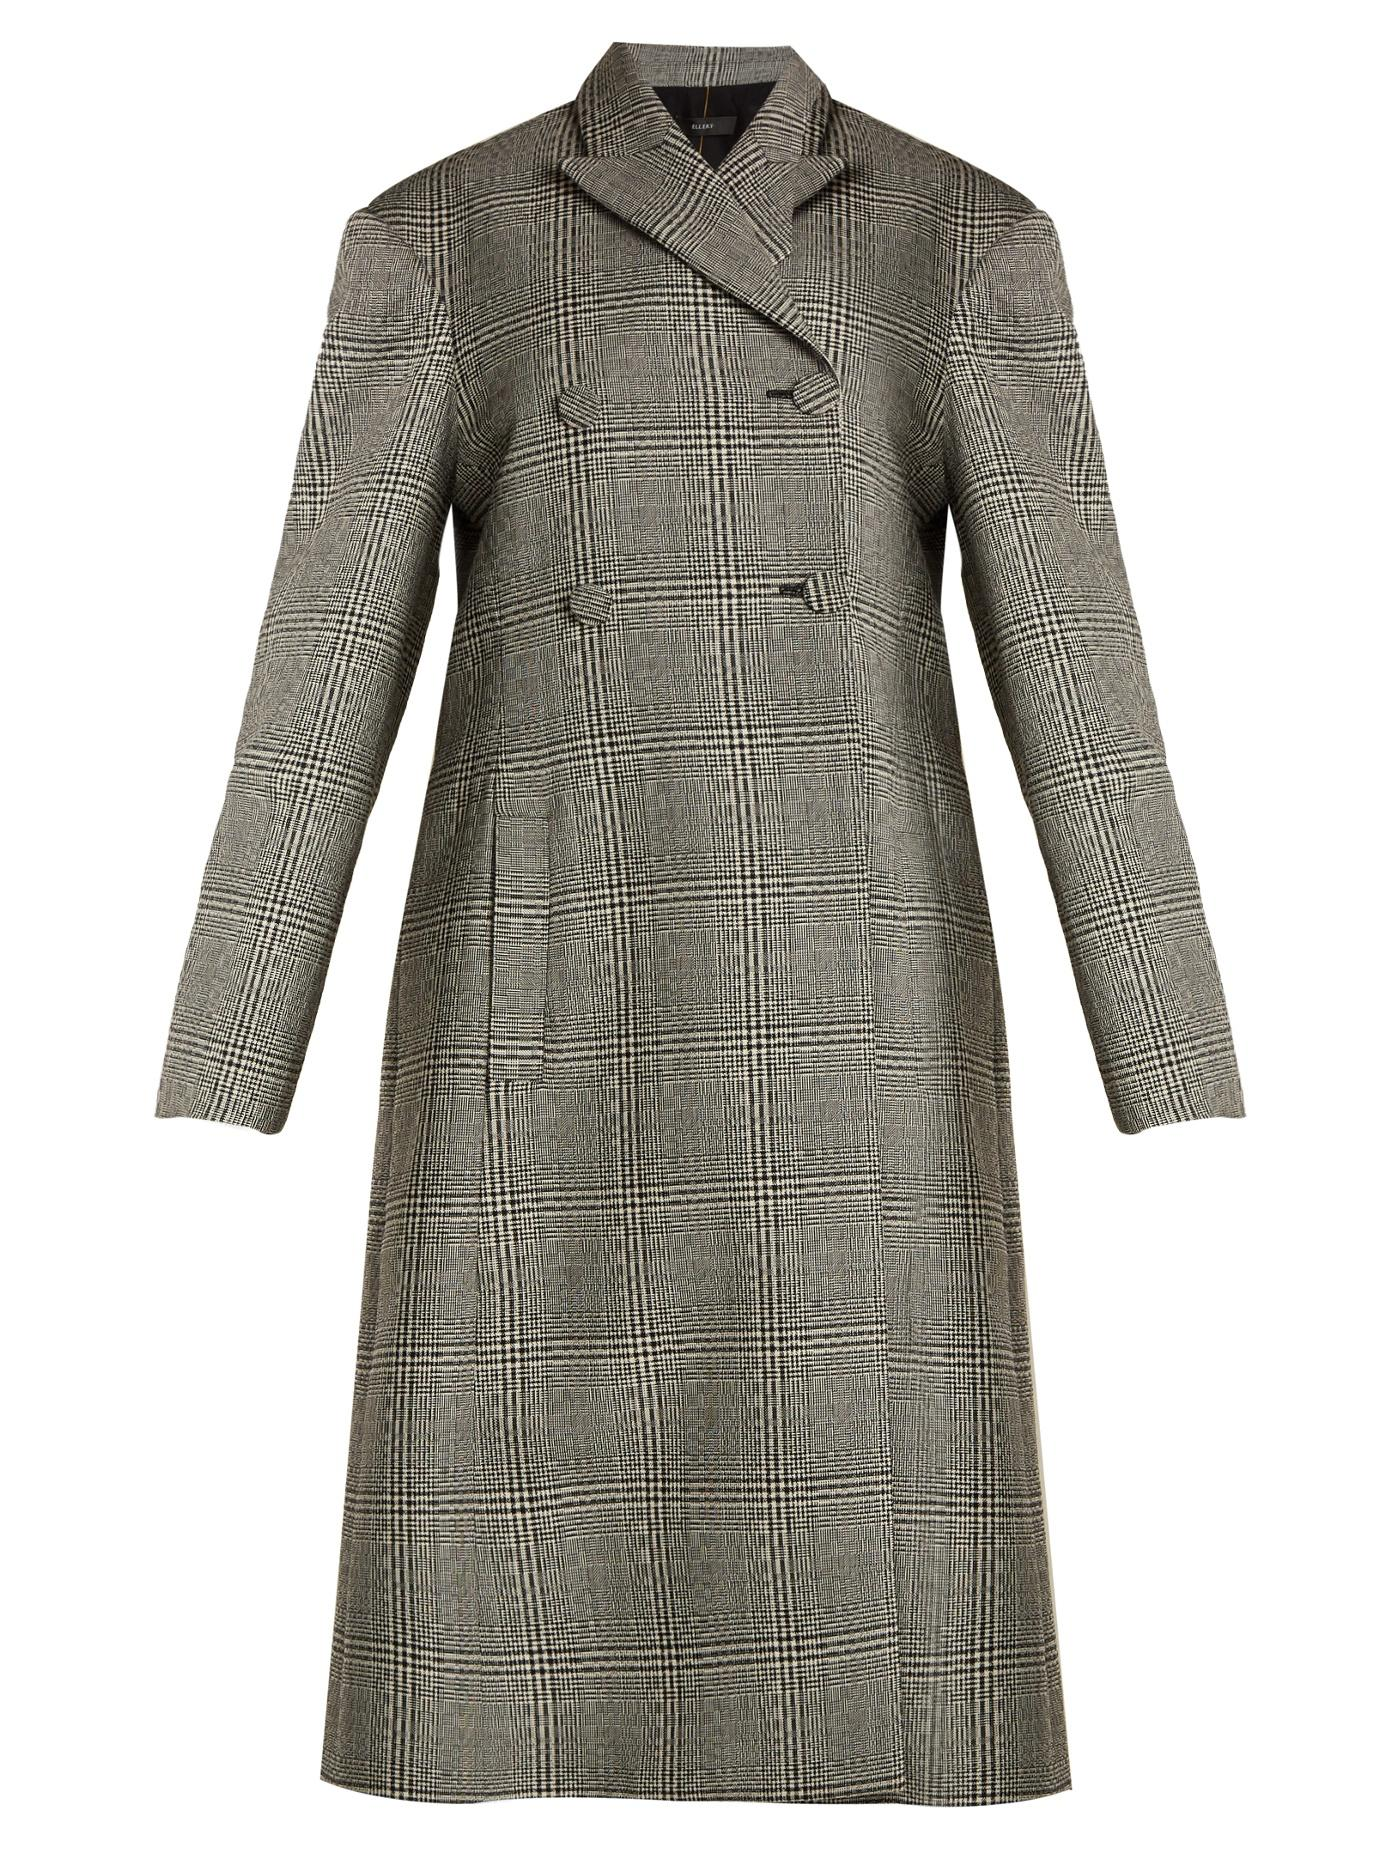 Ellery Bel Air Checked Double-Breasted Wool Coat In Black White